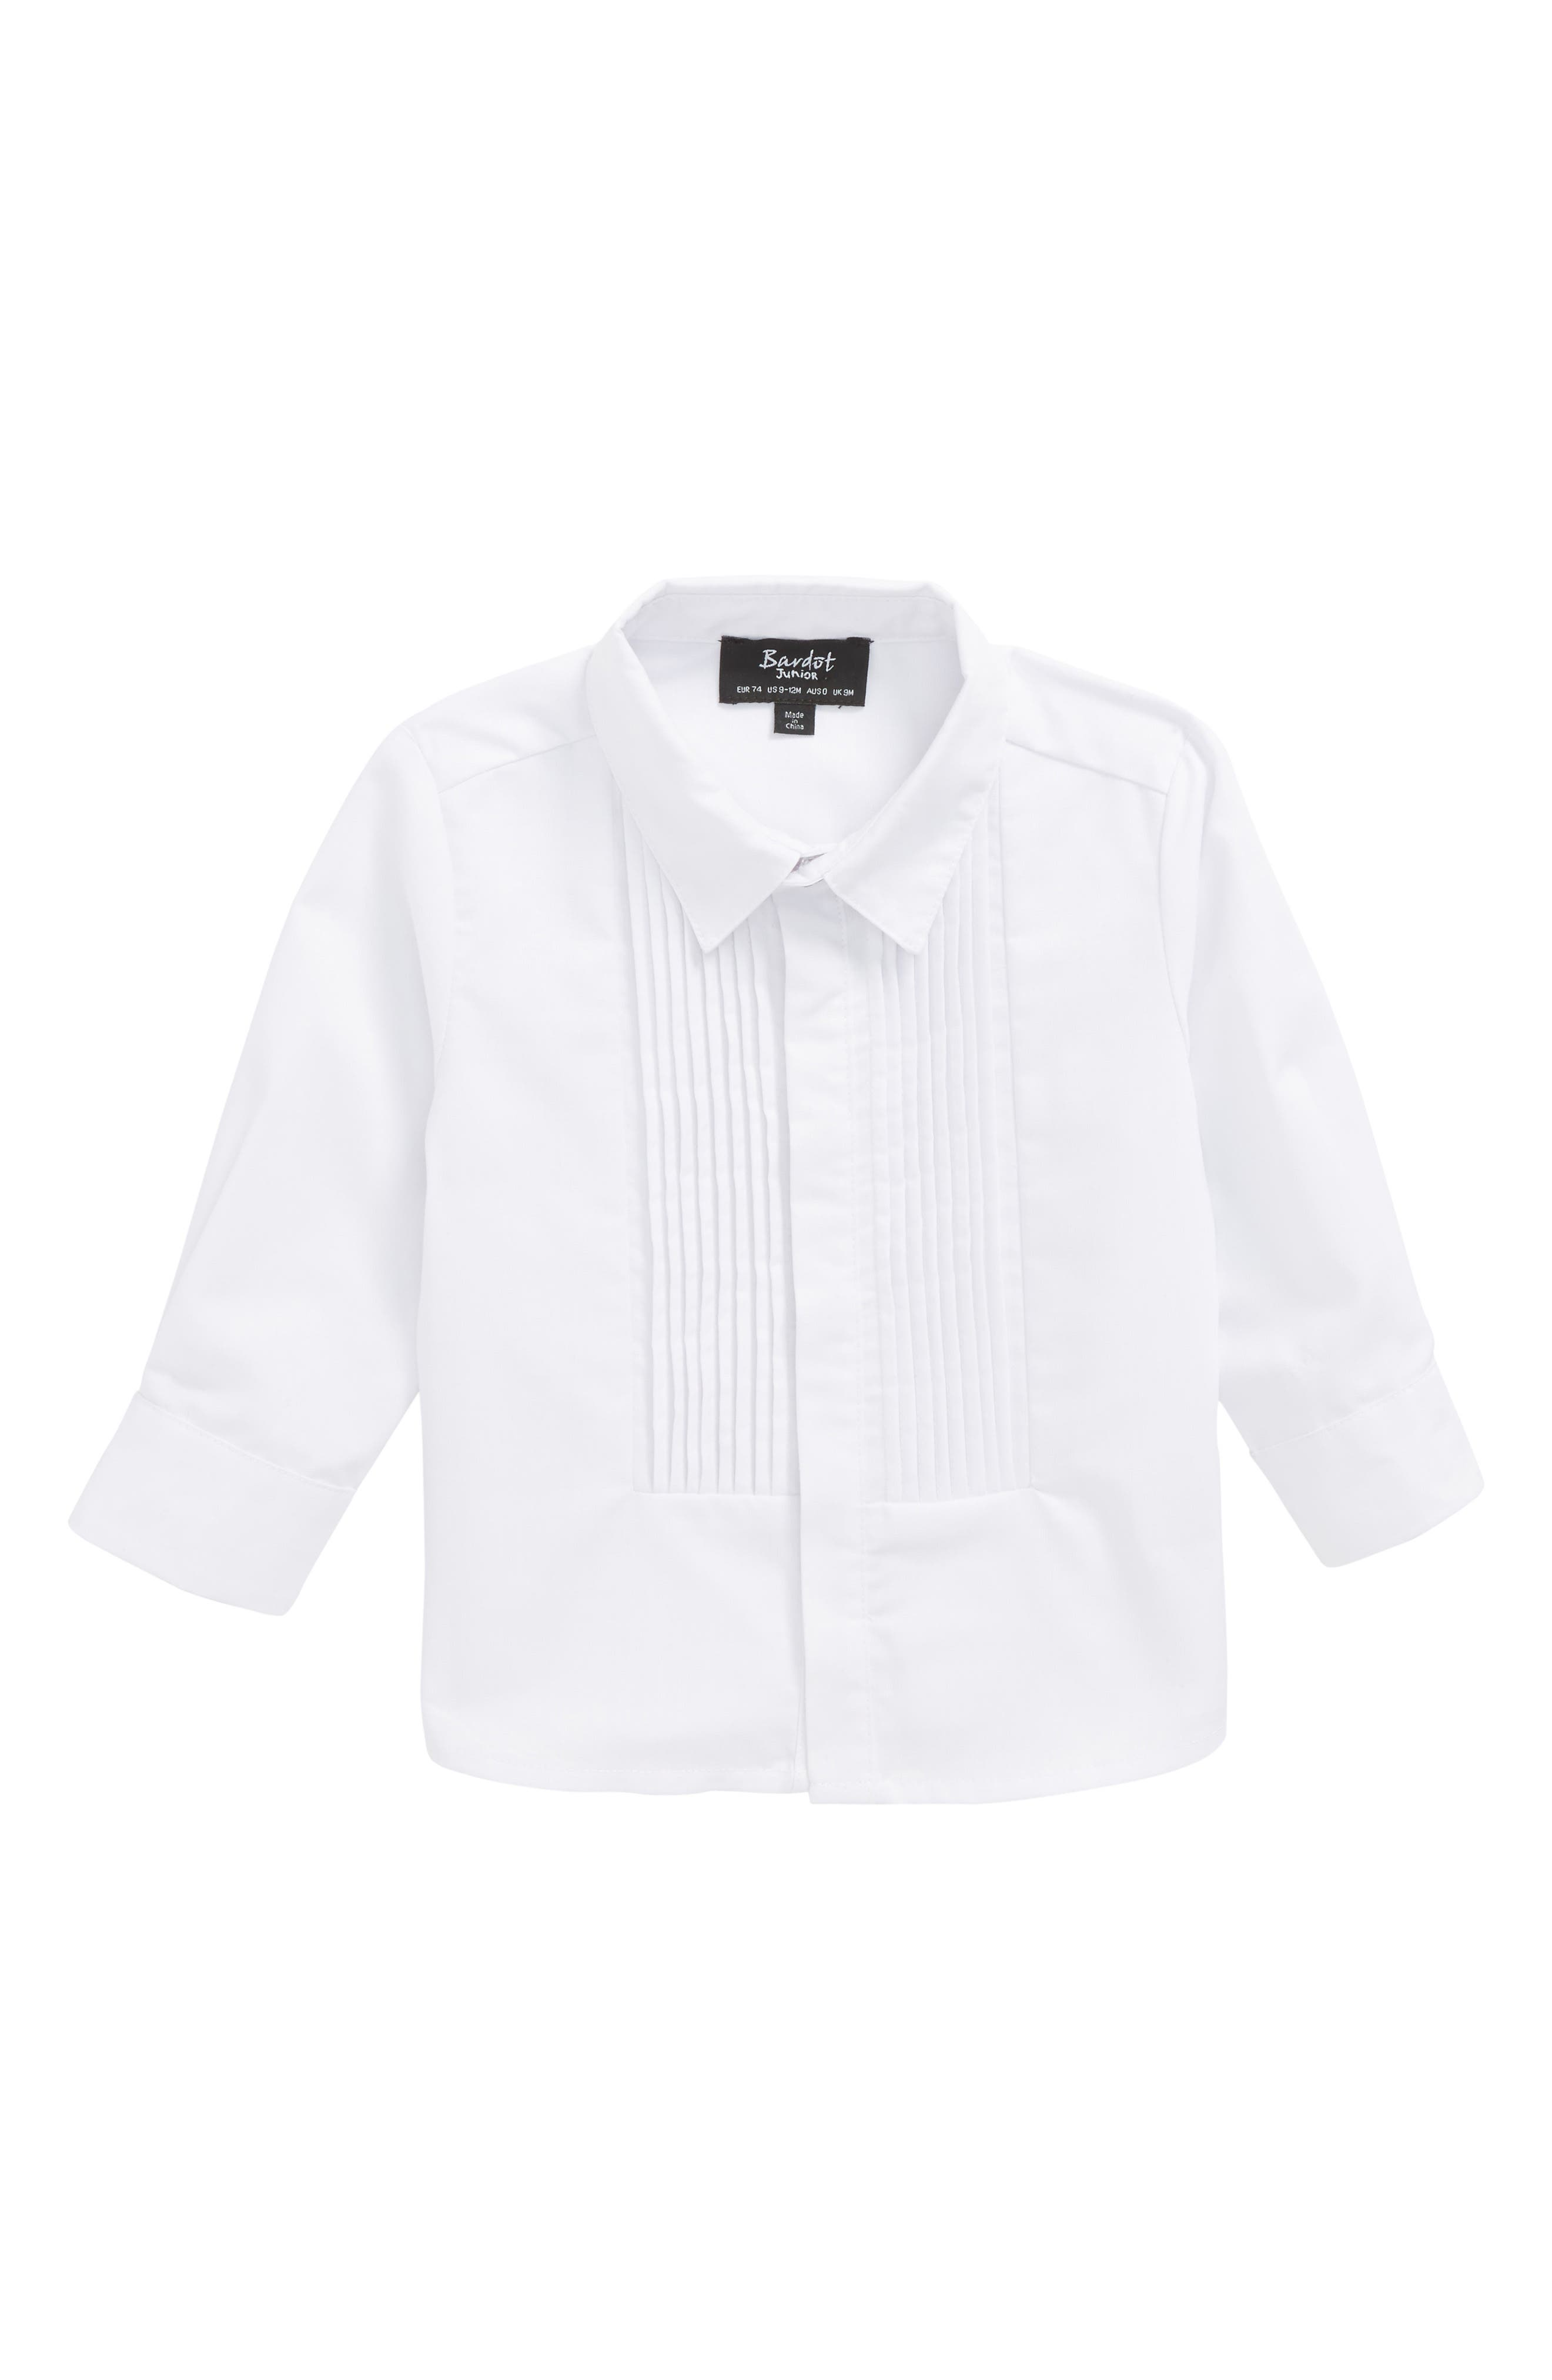 Alternate Image 1 Selected - Bardot Junior Tuxedo Shirt (Baby Boys)